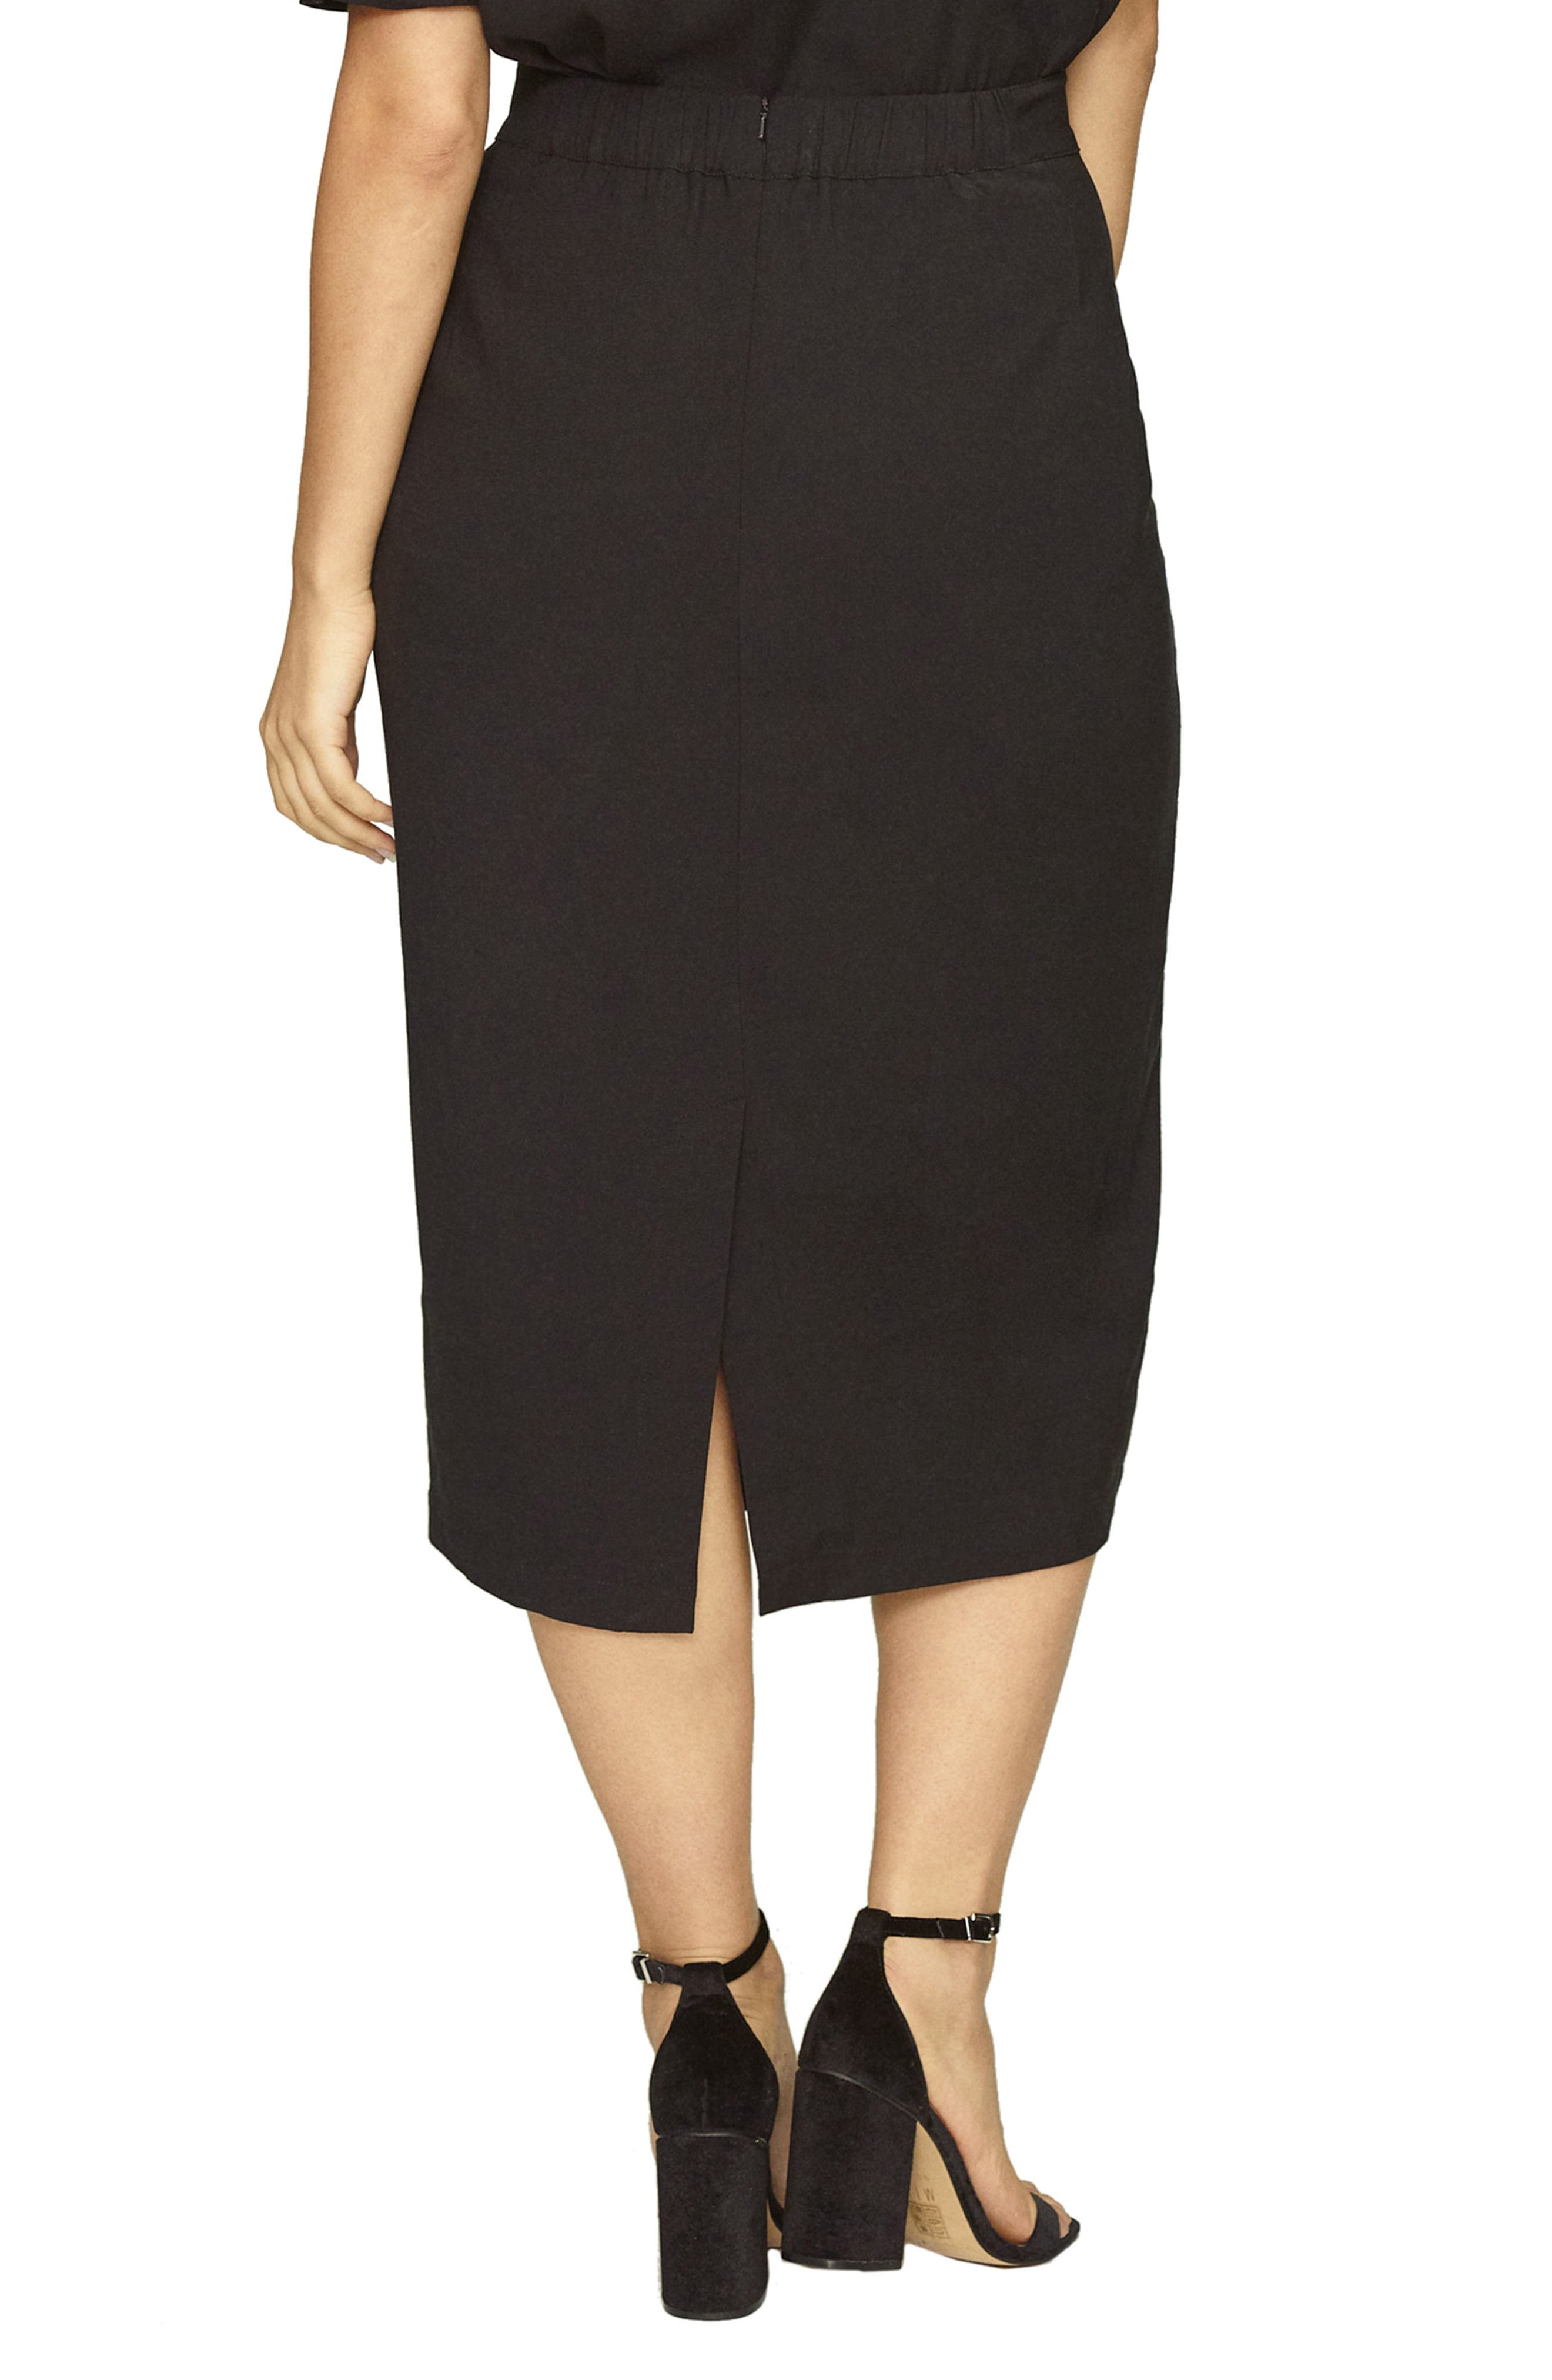 UNIVERSAL STANDARD, Twill Pencil Skirt, Alternate thumbnail 2, color, 001